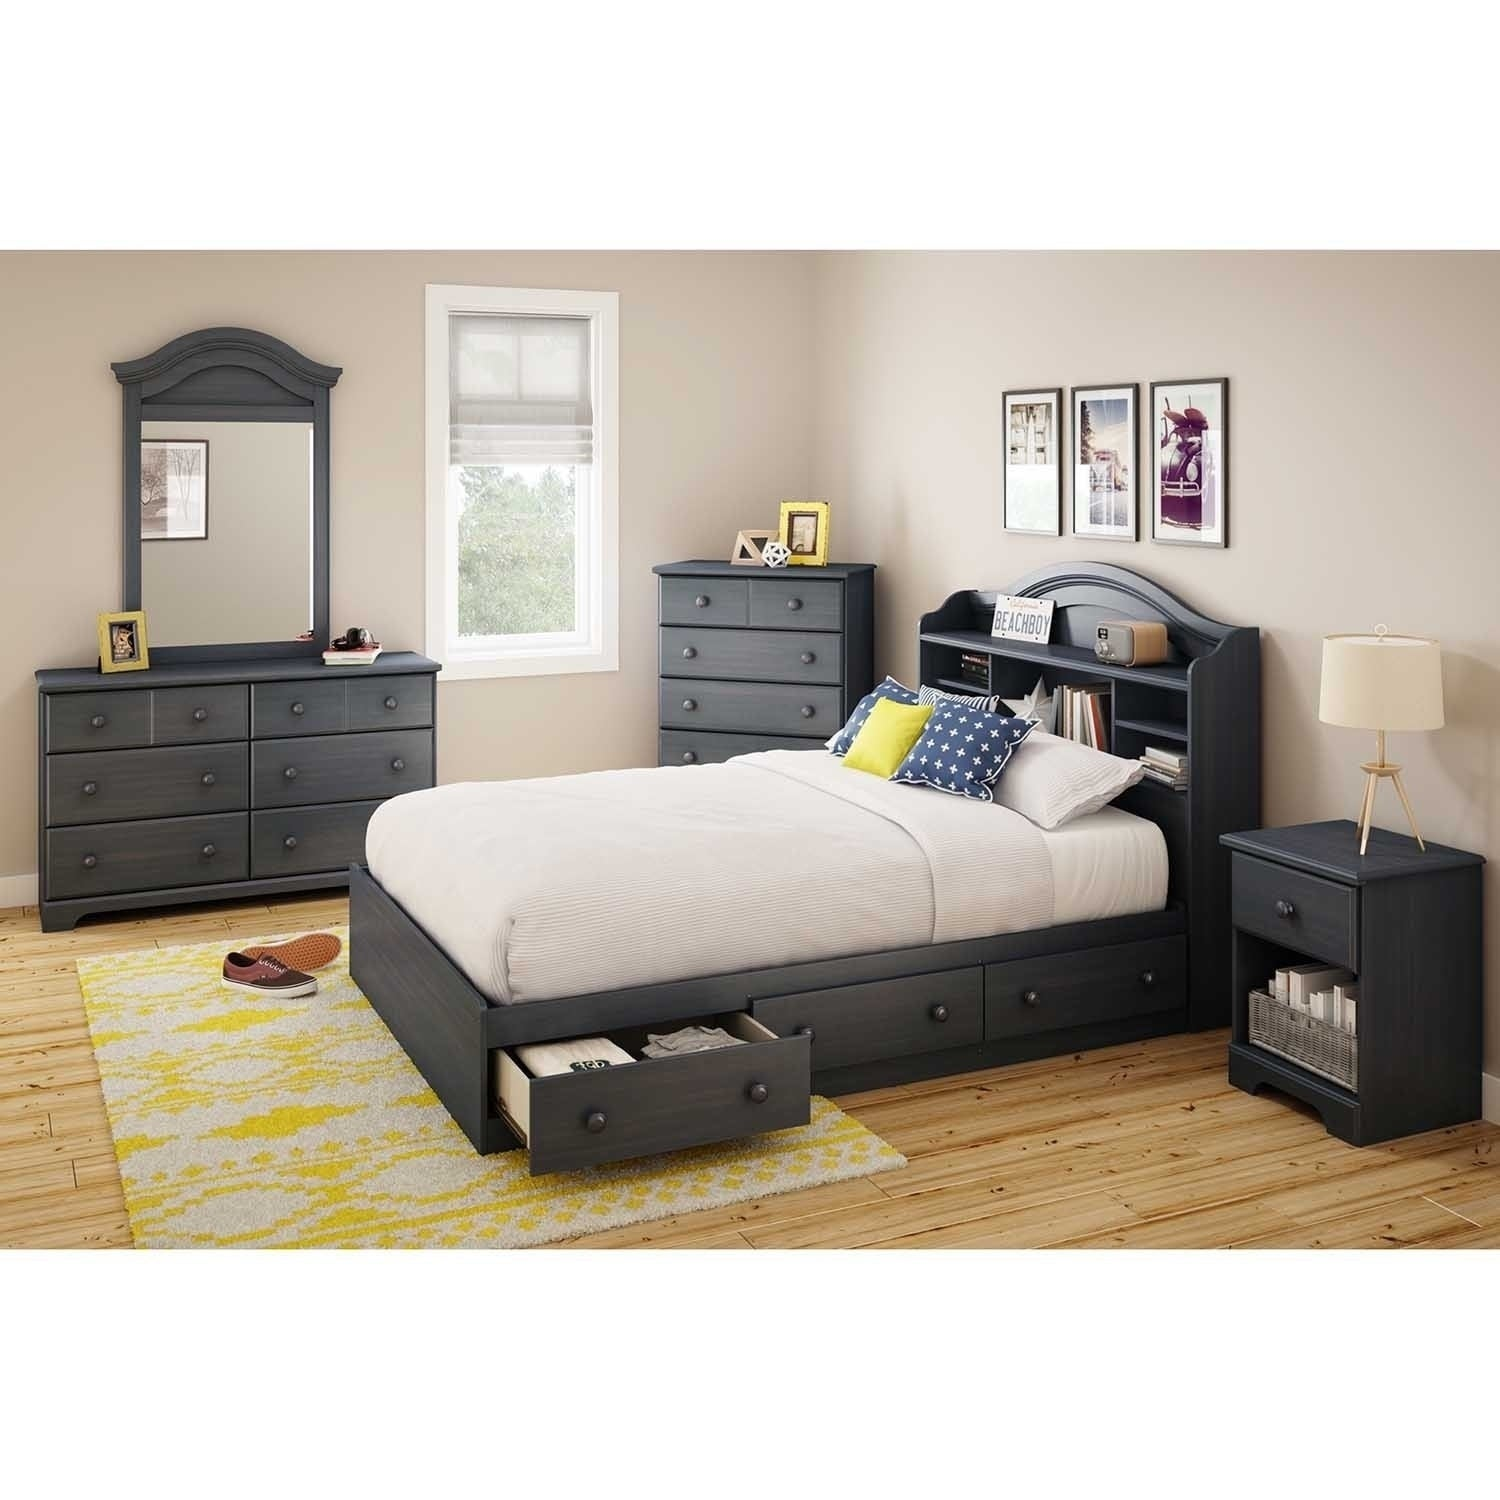 kp platform with drawer bed drawers shore full queen c gramercy beds south